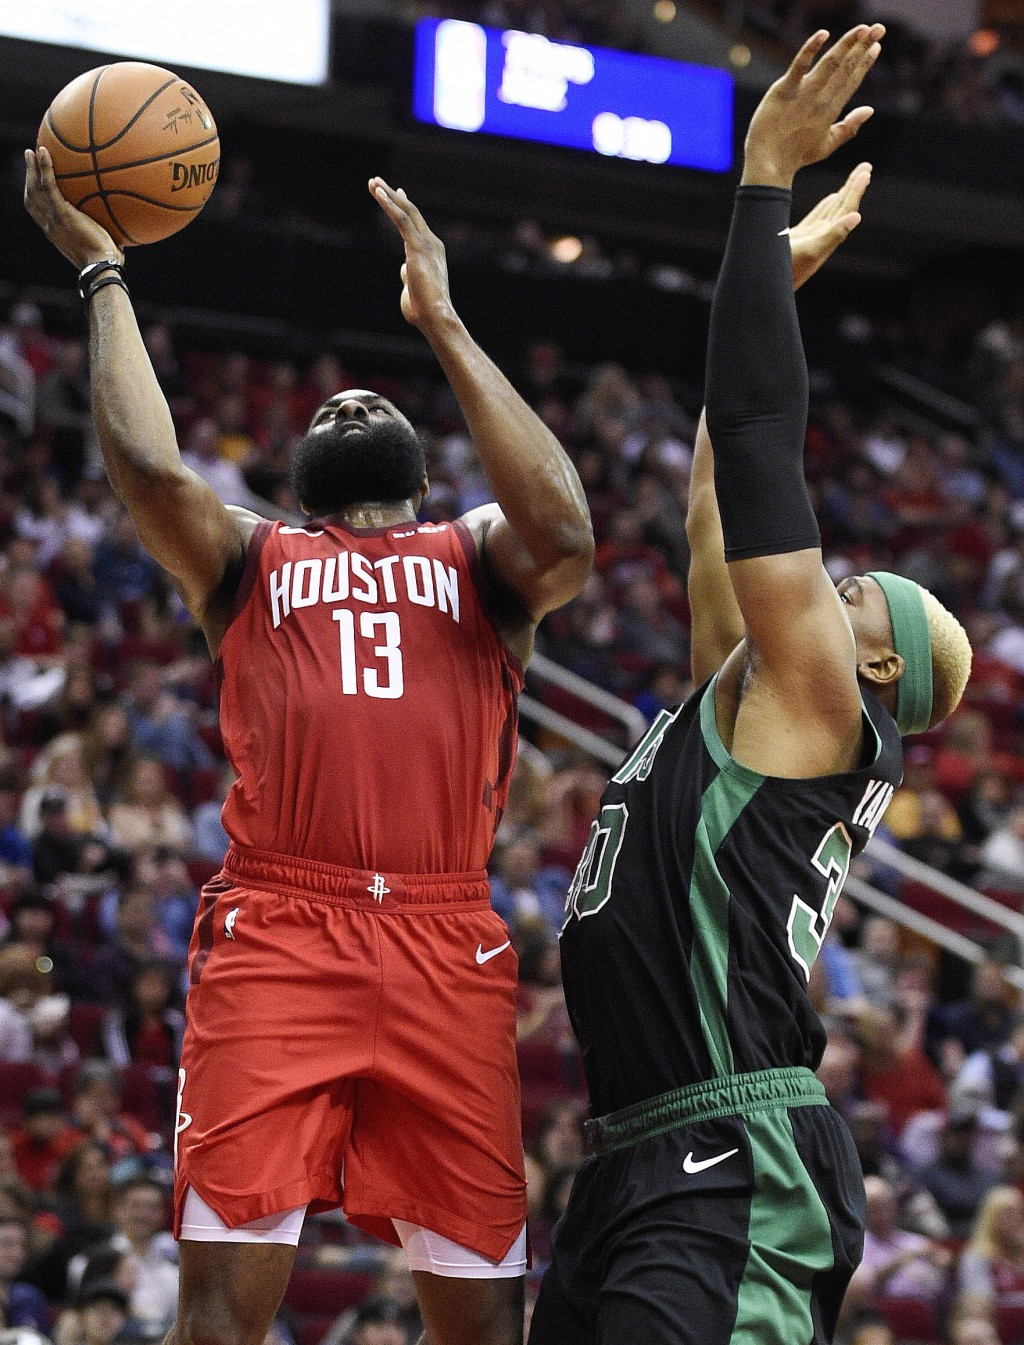 Houston Rockets guard James Harden (13) drives to the basket as Boston Celtics forward Guerschon Yabusele defends during the first half of an NBA bask...